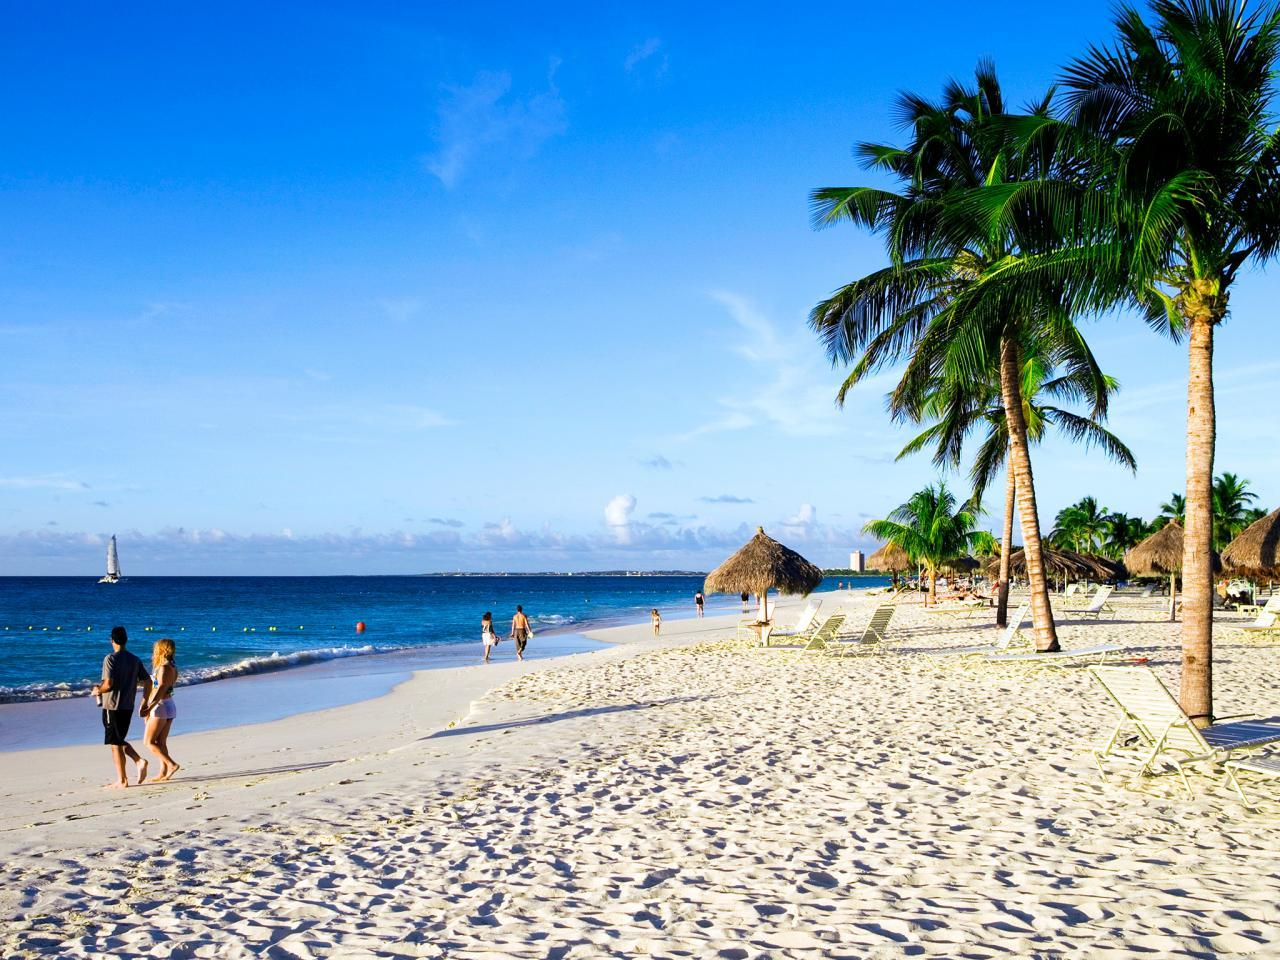 Eagle Beach, Aruba  Holger Leue/ Lonely Planet Images/ Getty Images